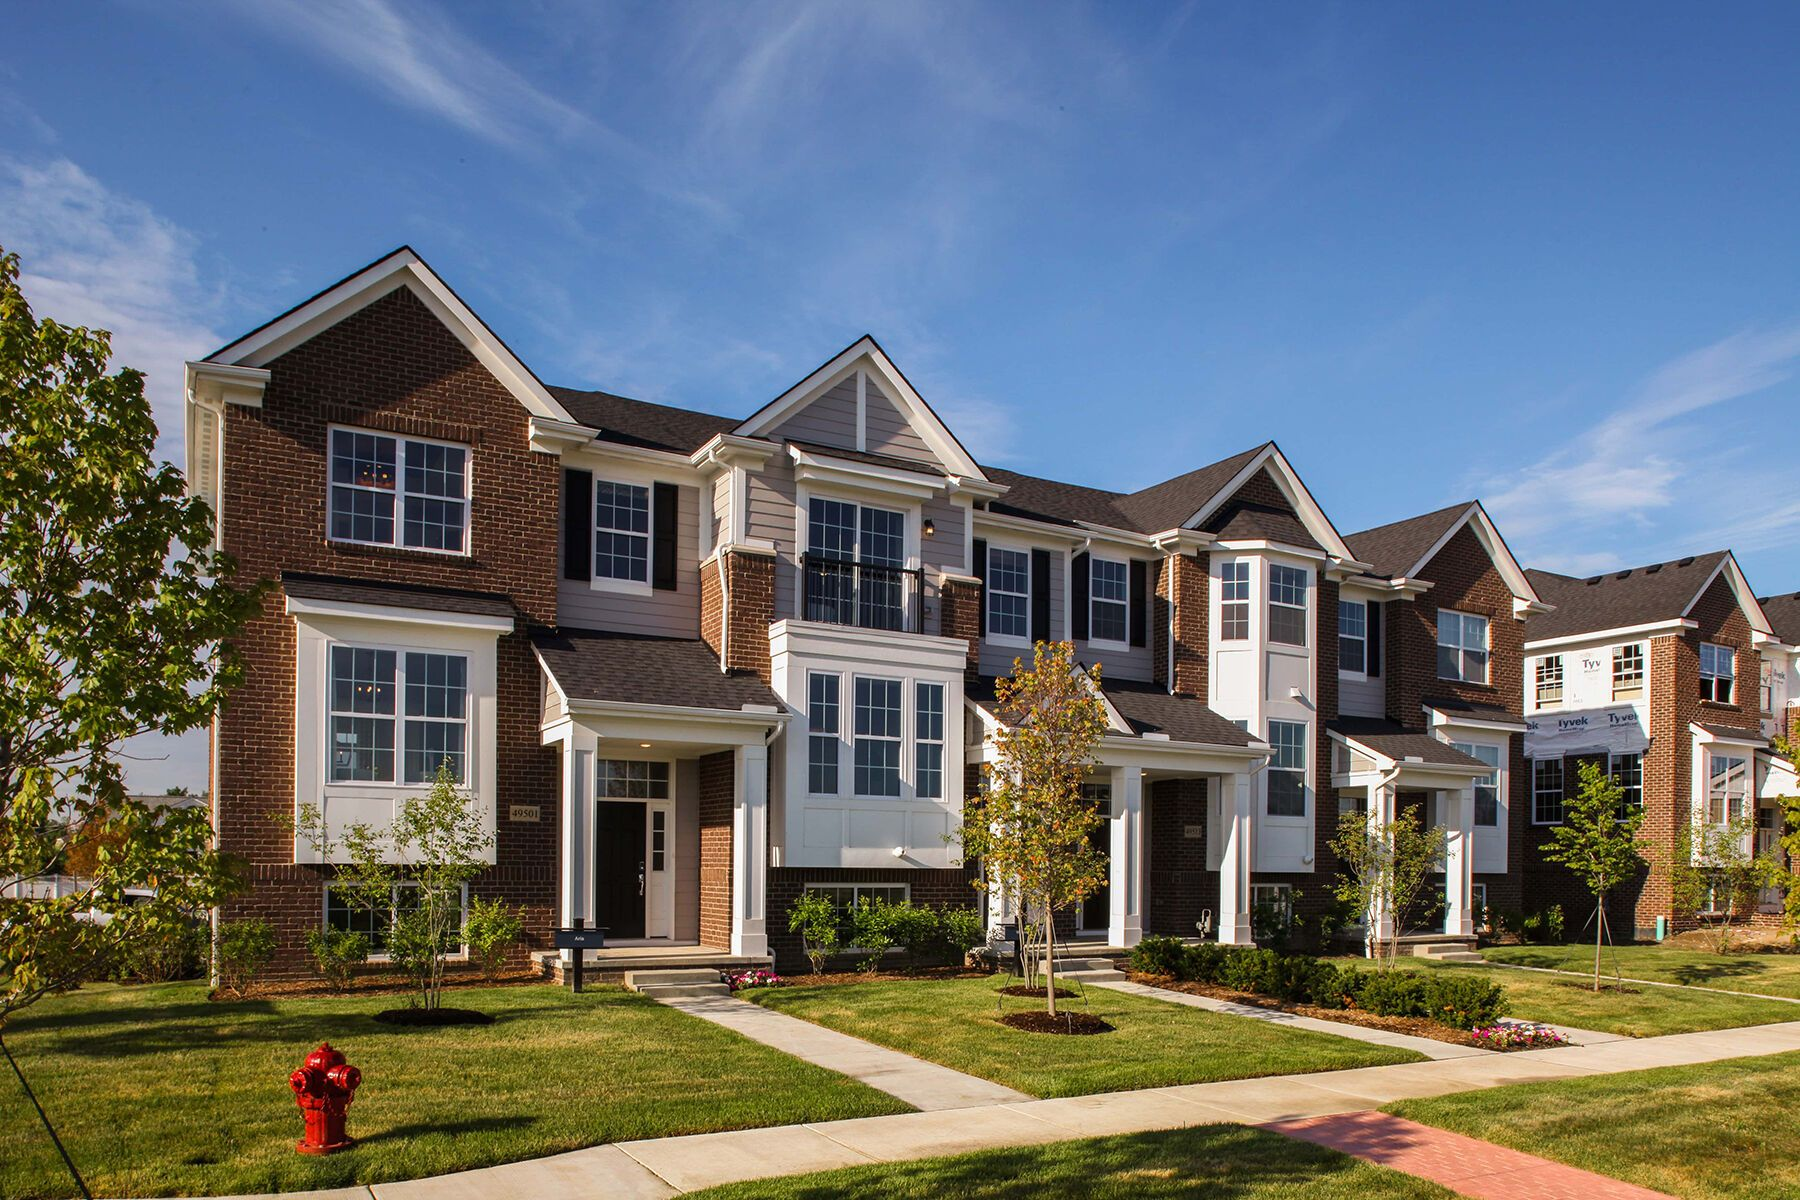 The Towns at Cherry Hill Exterior